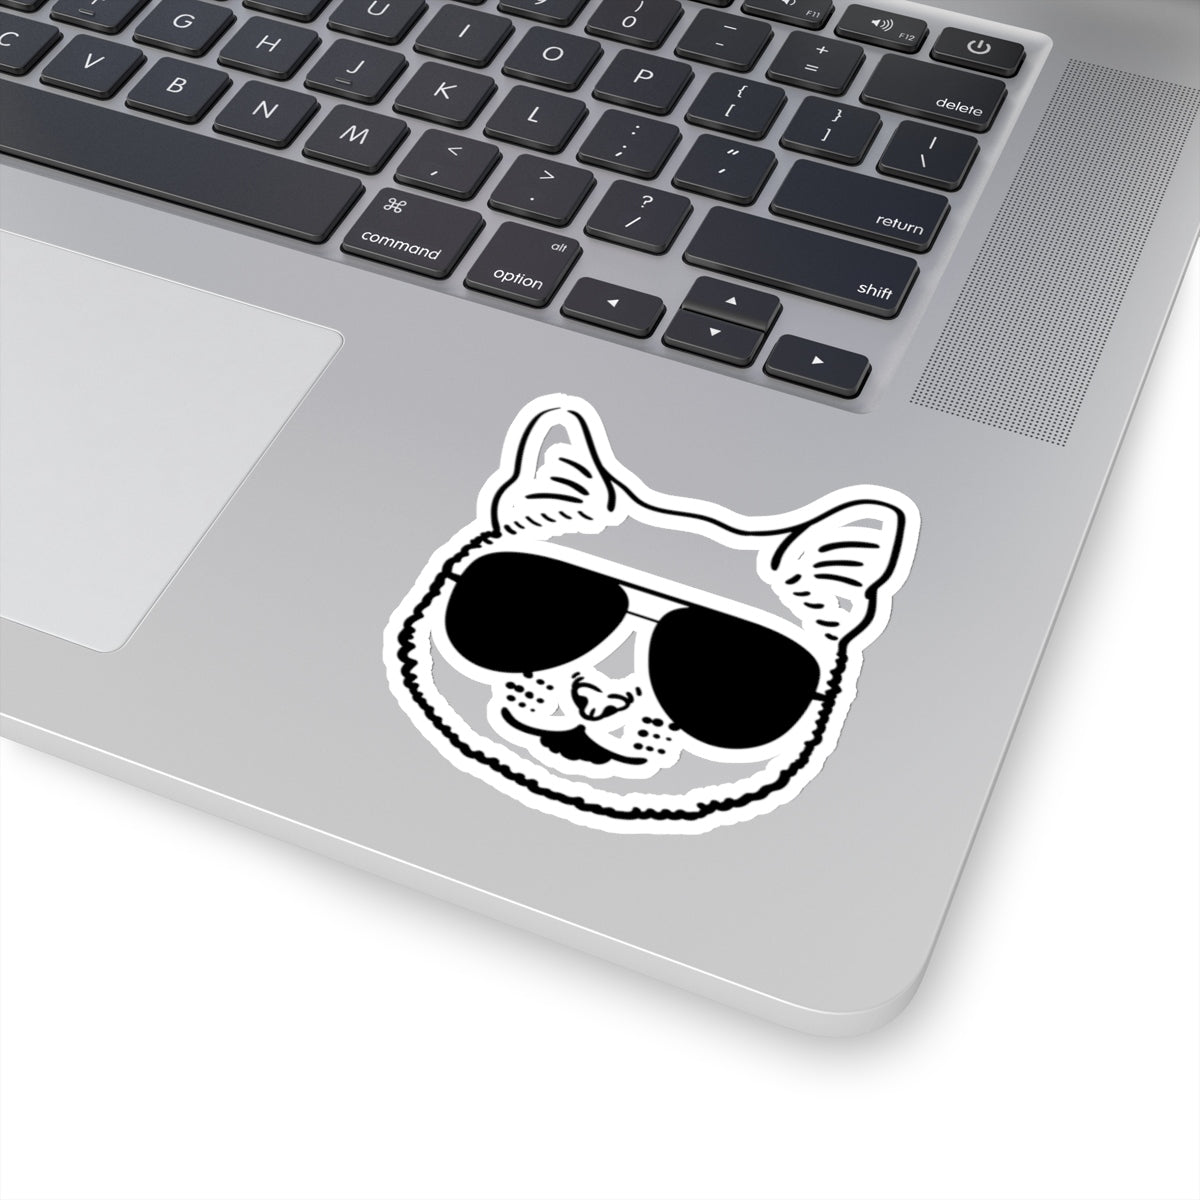 Cat Sticker, Cool Cat, Cool Cat Sticker, Sunglasses Sticker, Cat Decal, Sticker, Laptop Sticker, Journal Sticker, Water Bottle Sticker - jewelry-by-meesh